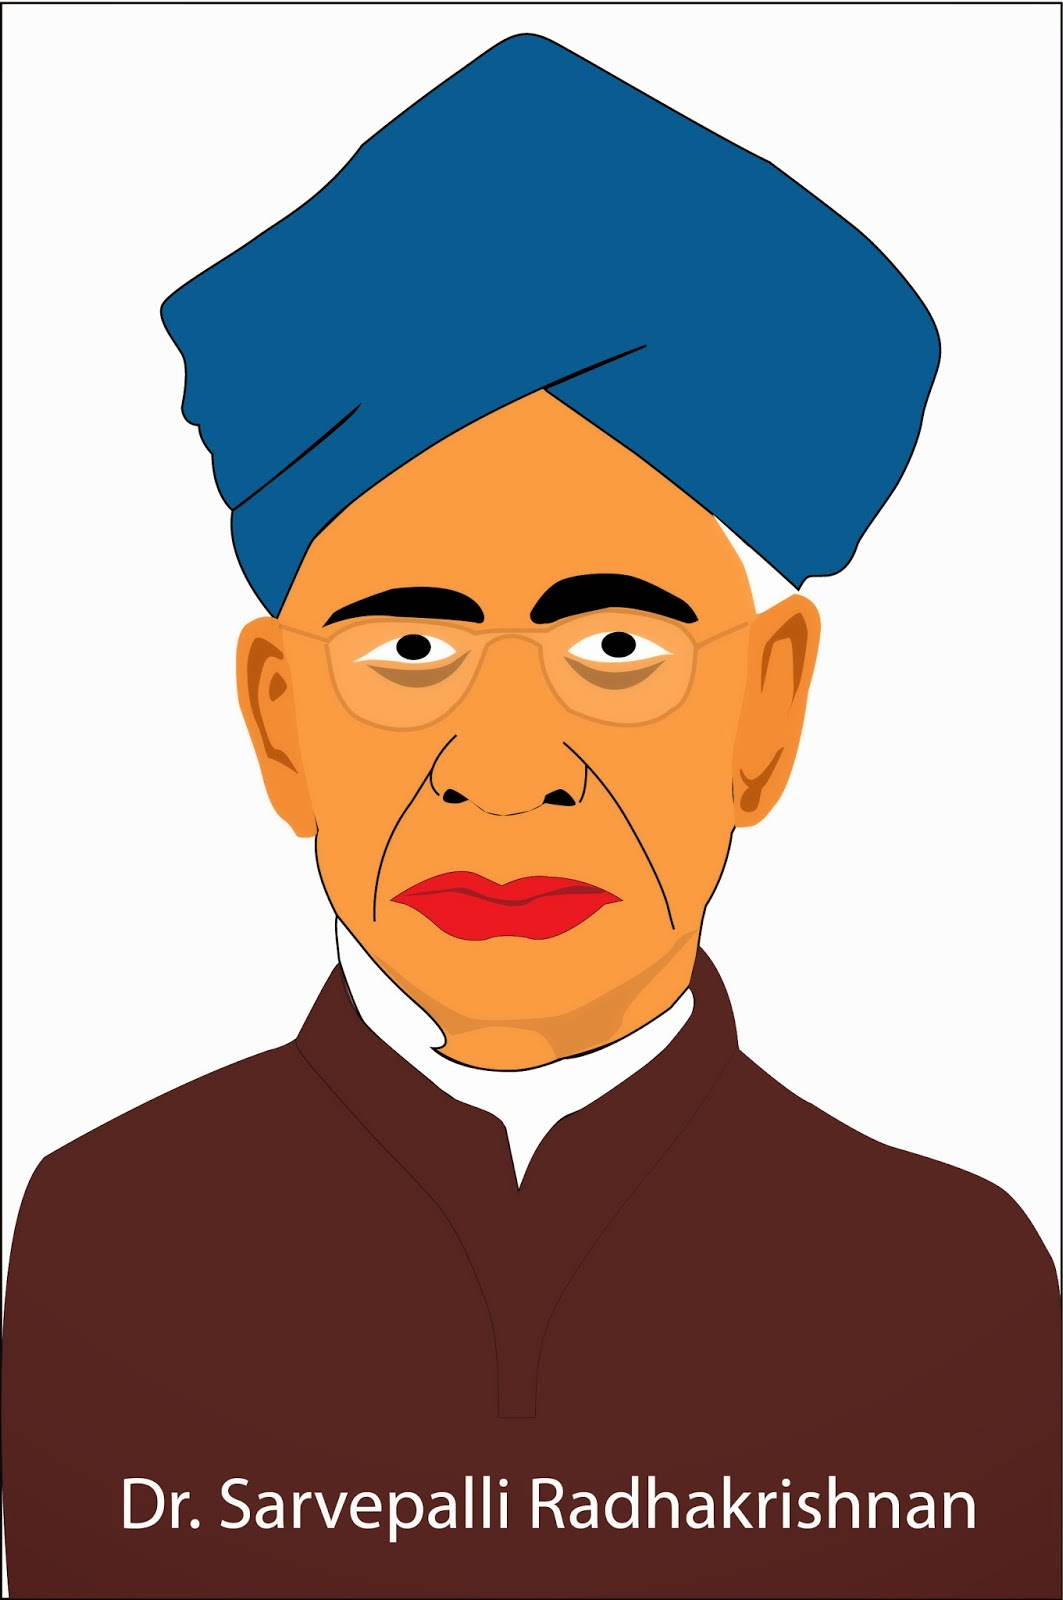 an essay on dr sarvepalli radhakrishnan Free essays on dr sarvepalli radhakrishnan in marathi get help with your writing 1 through 30.